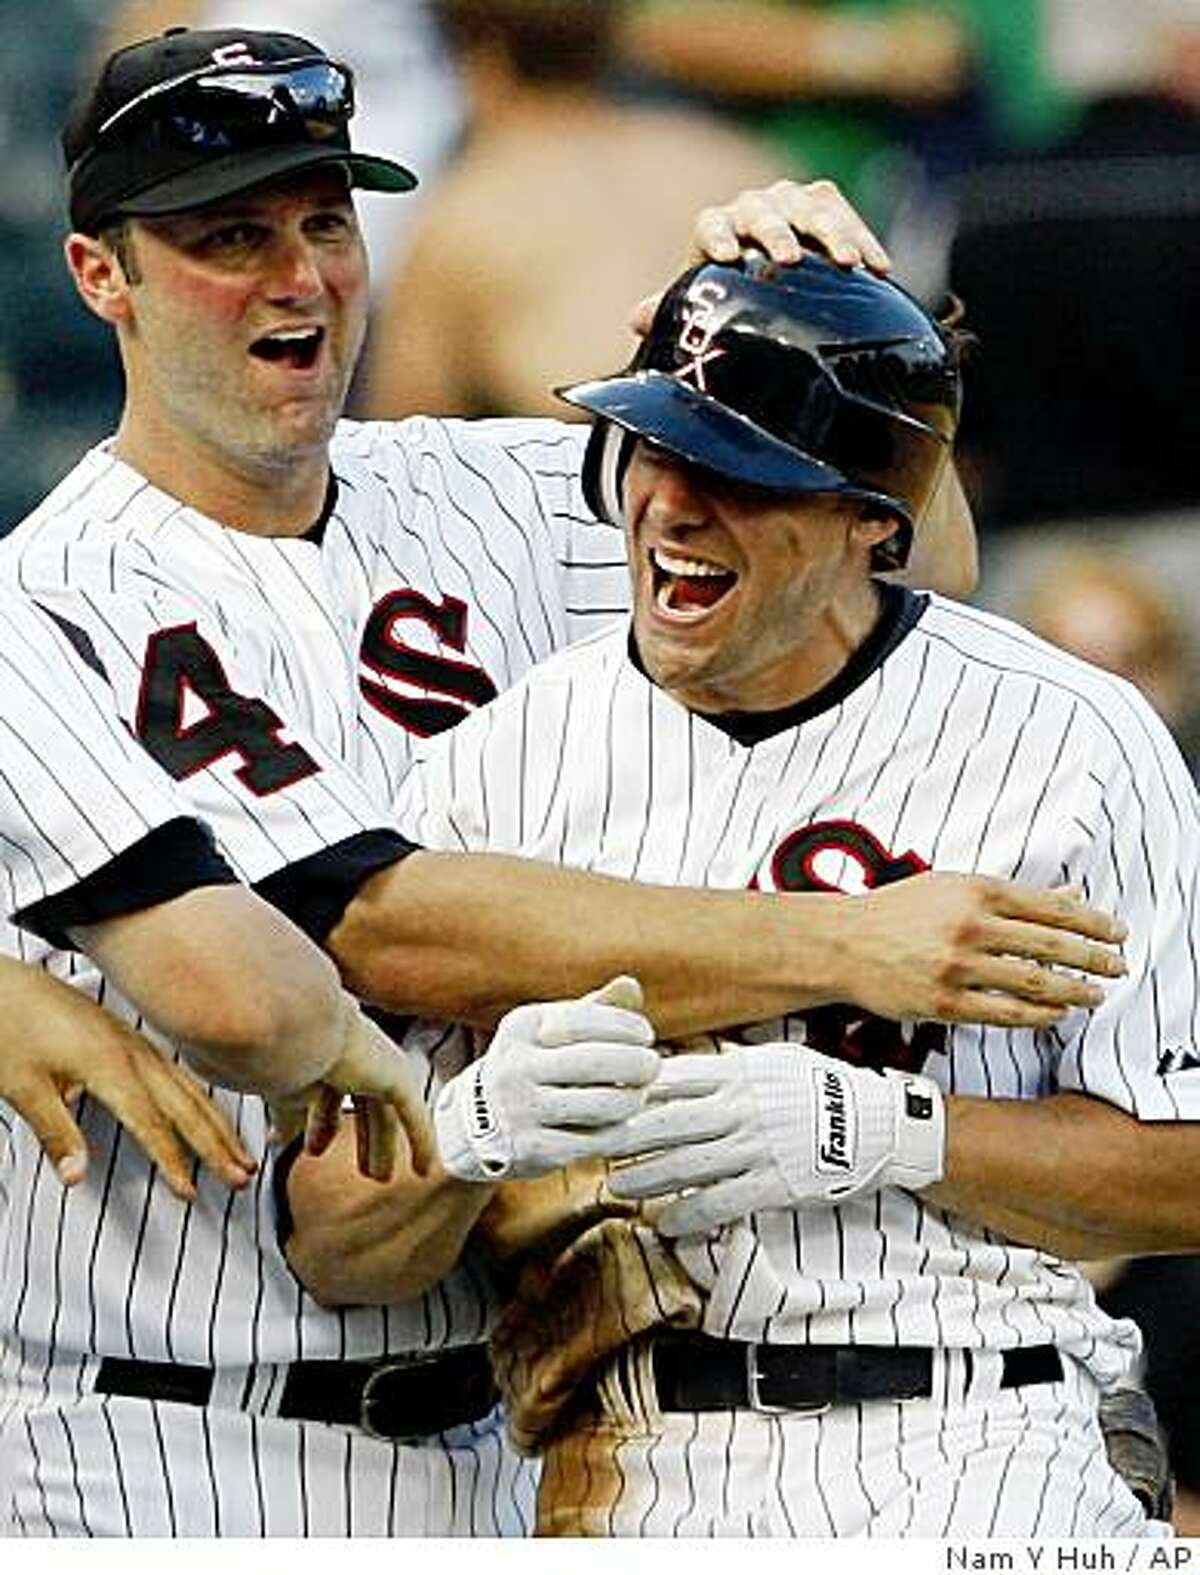 Chicago White Sox's Scott Podsednik, right, celebrates with Paul Konerko after Podsednik drove in the winning run against the Los Angeles Dodgers during the 13th inning of an interleague baseball game in Chicago, Thursday, June 25, 2009. The White Sox won 6-5. (AP Photo/Nam Y. Huh)